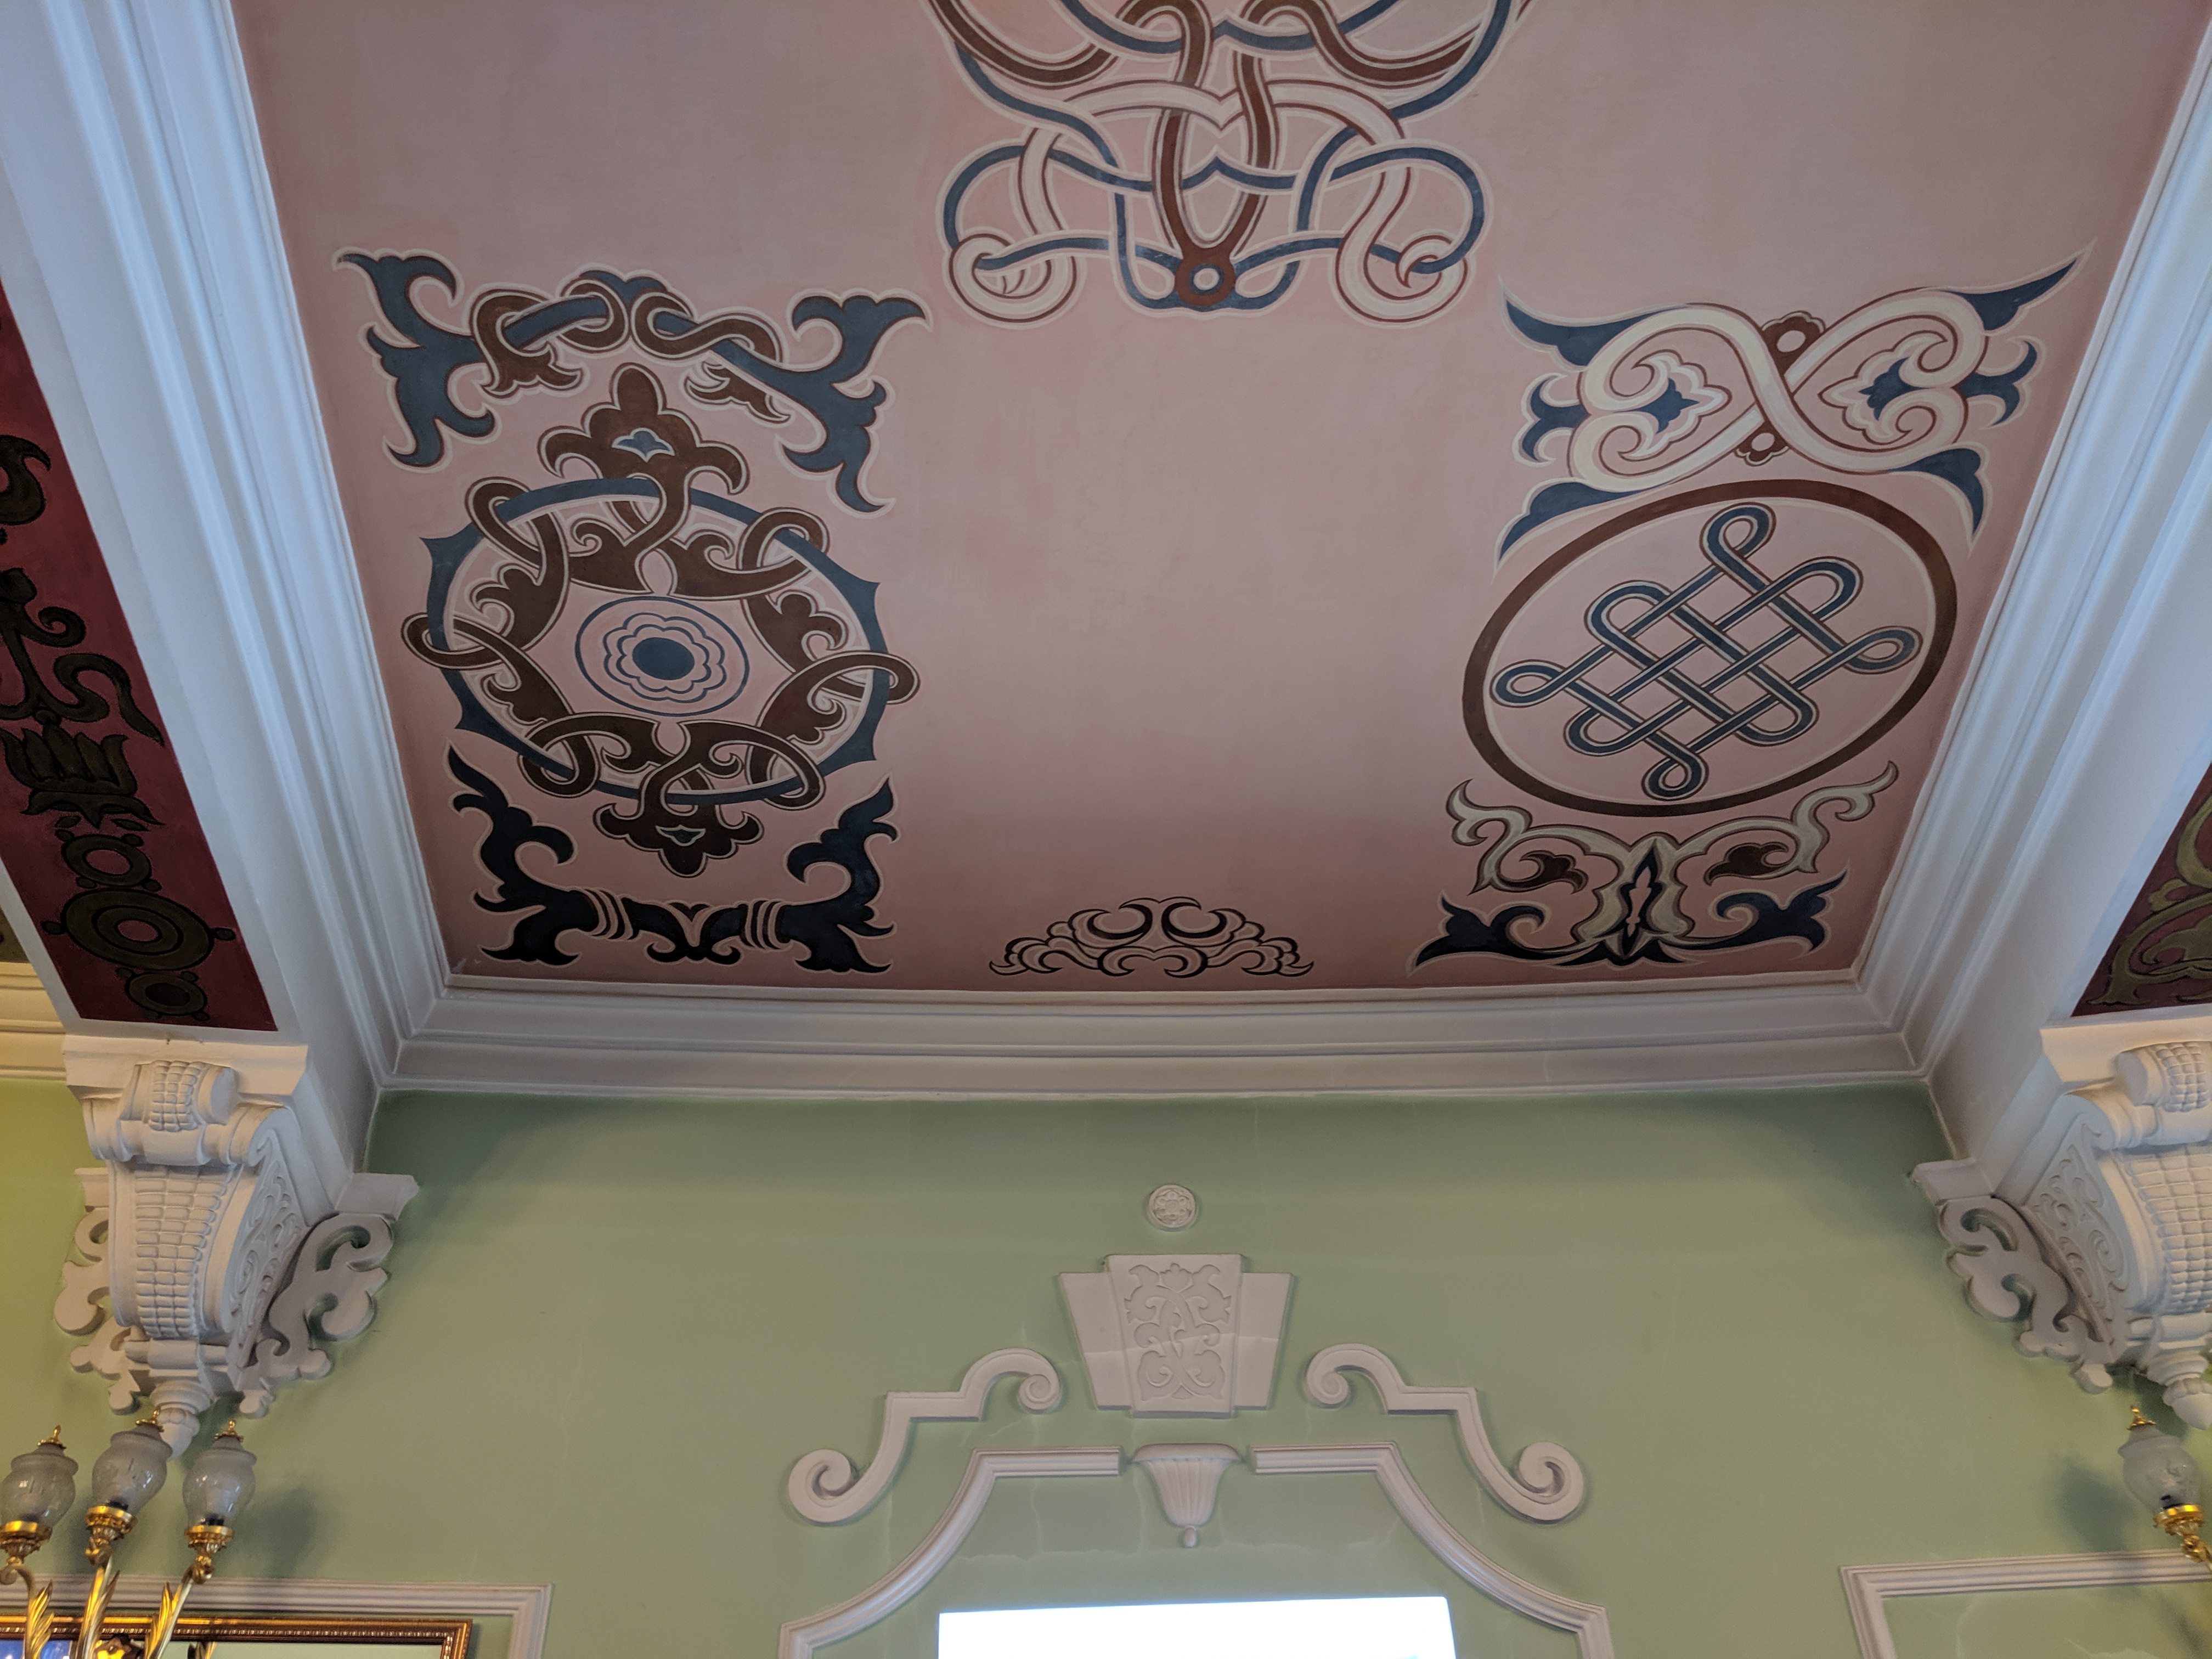 Ceiling at ballet theater in Ulan-Ude, Russia